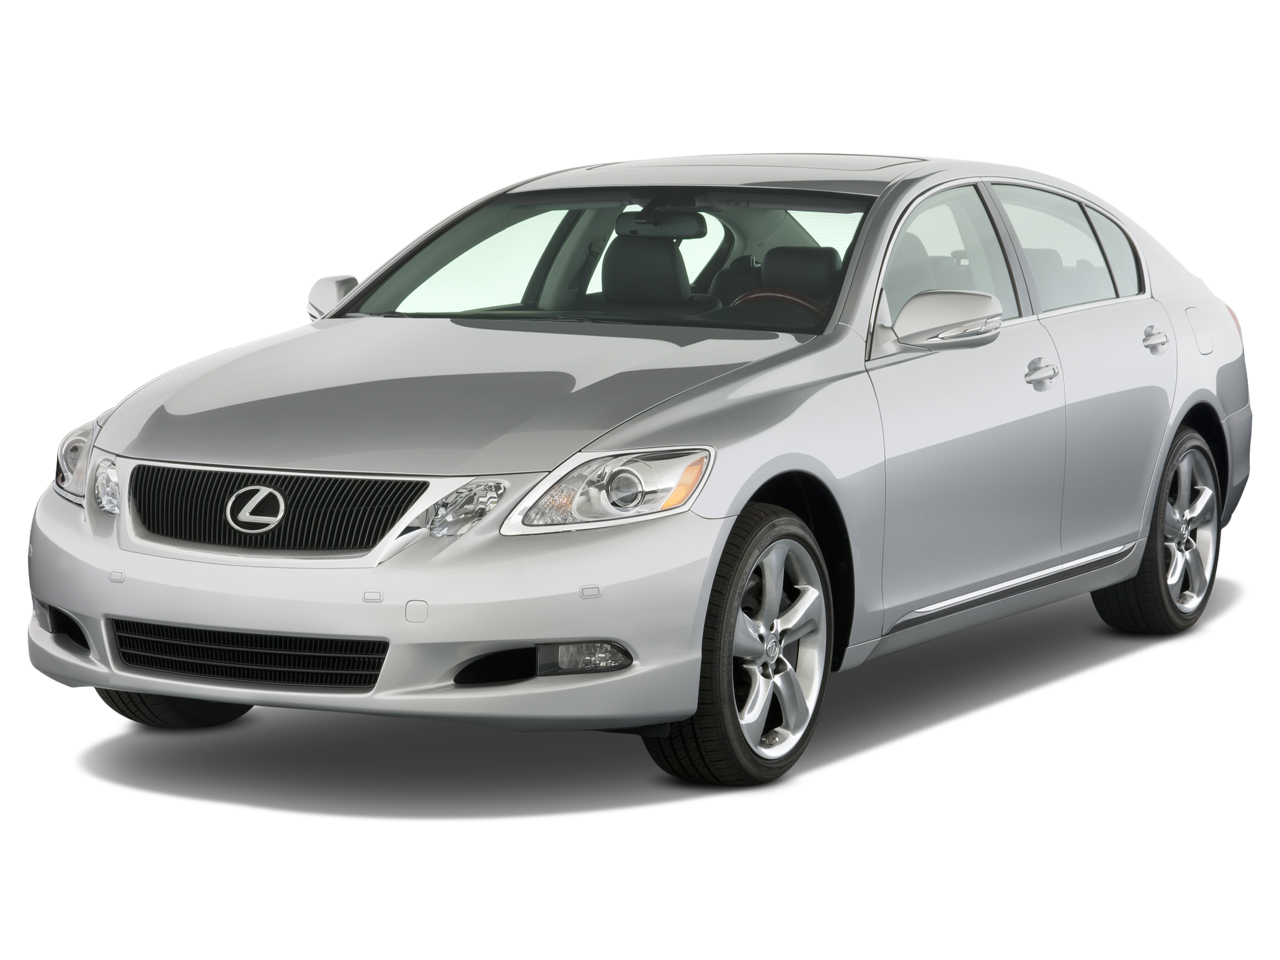 2008 lexus gs 460 review ratings specs prices and photos the car connection. Black Bedroom Furniture Sets. Home Design Ideas